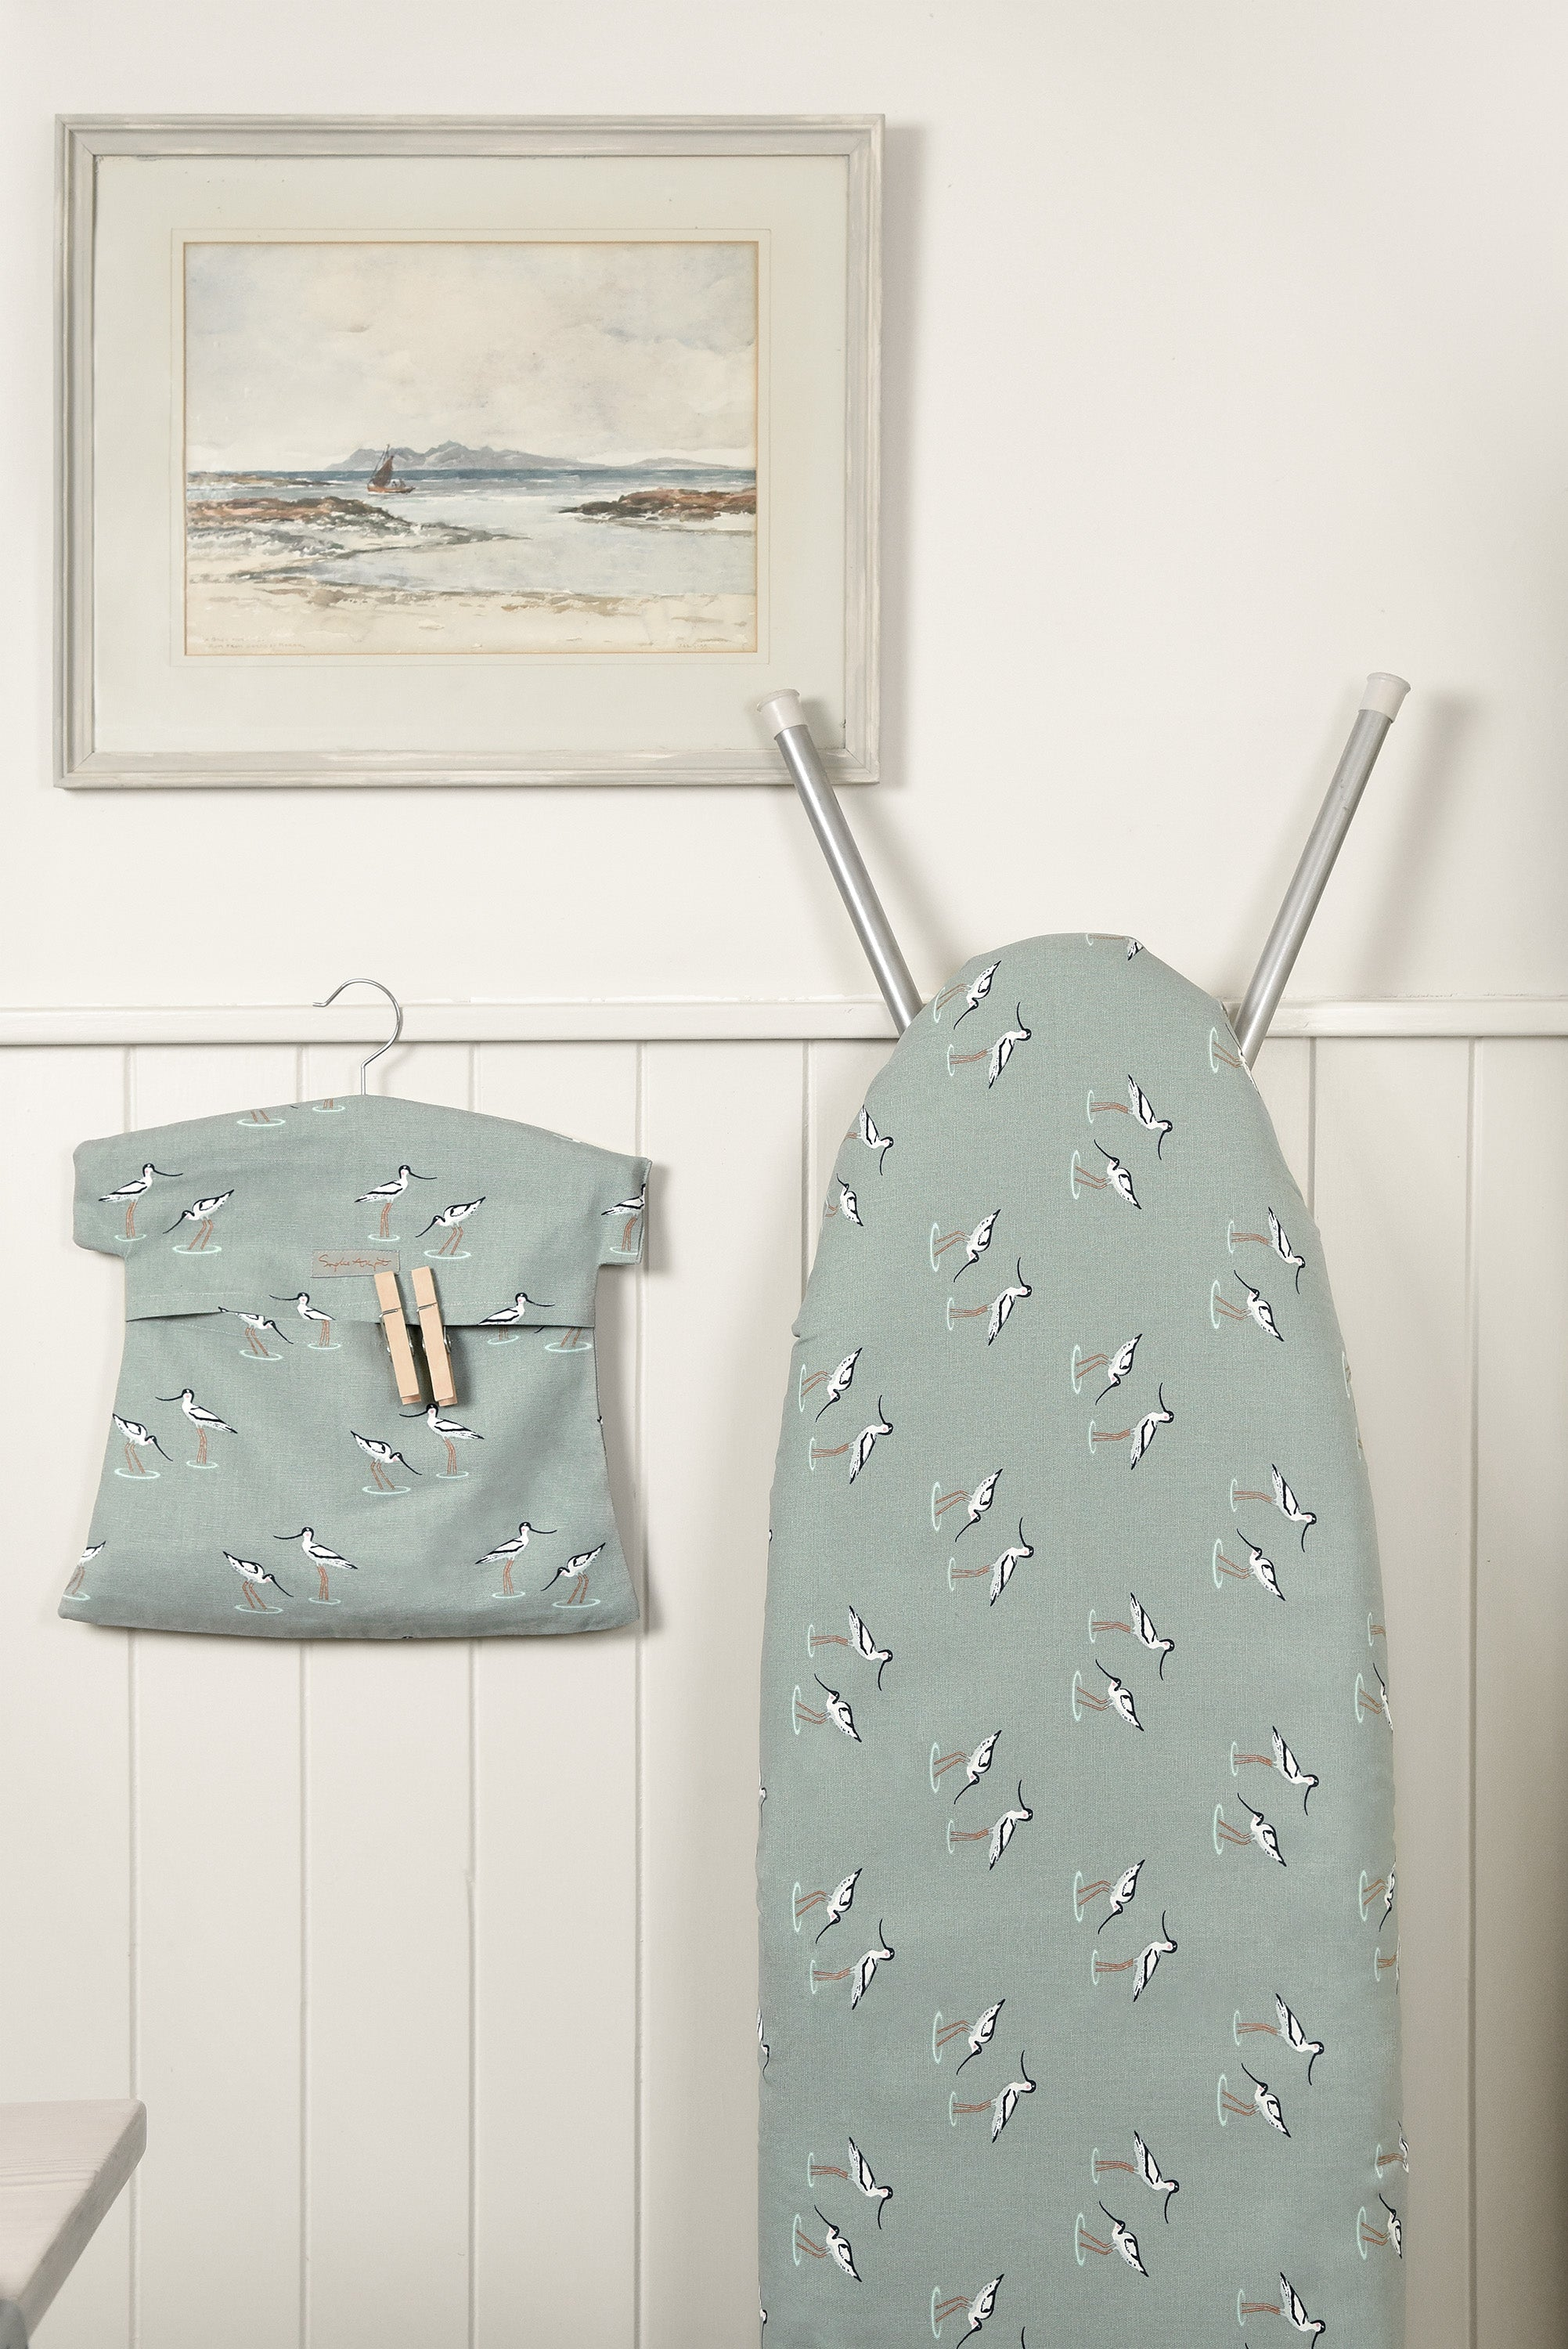 Sophie Allport utility room inspiration in sea blue green coastal birds design, a lovely ironing board cover and peg bag.